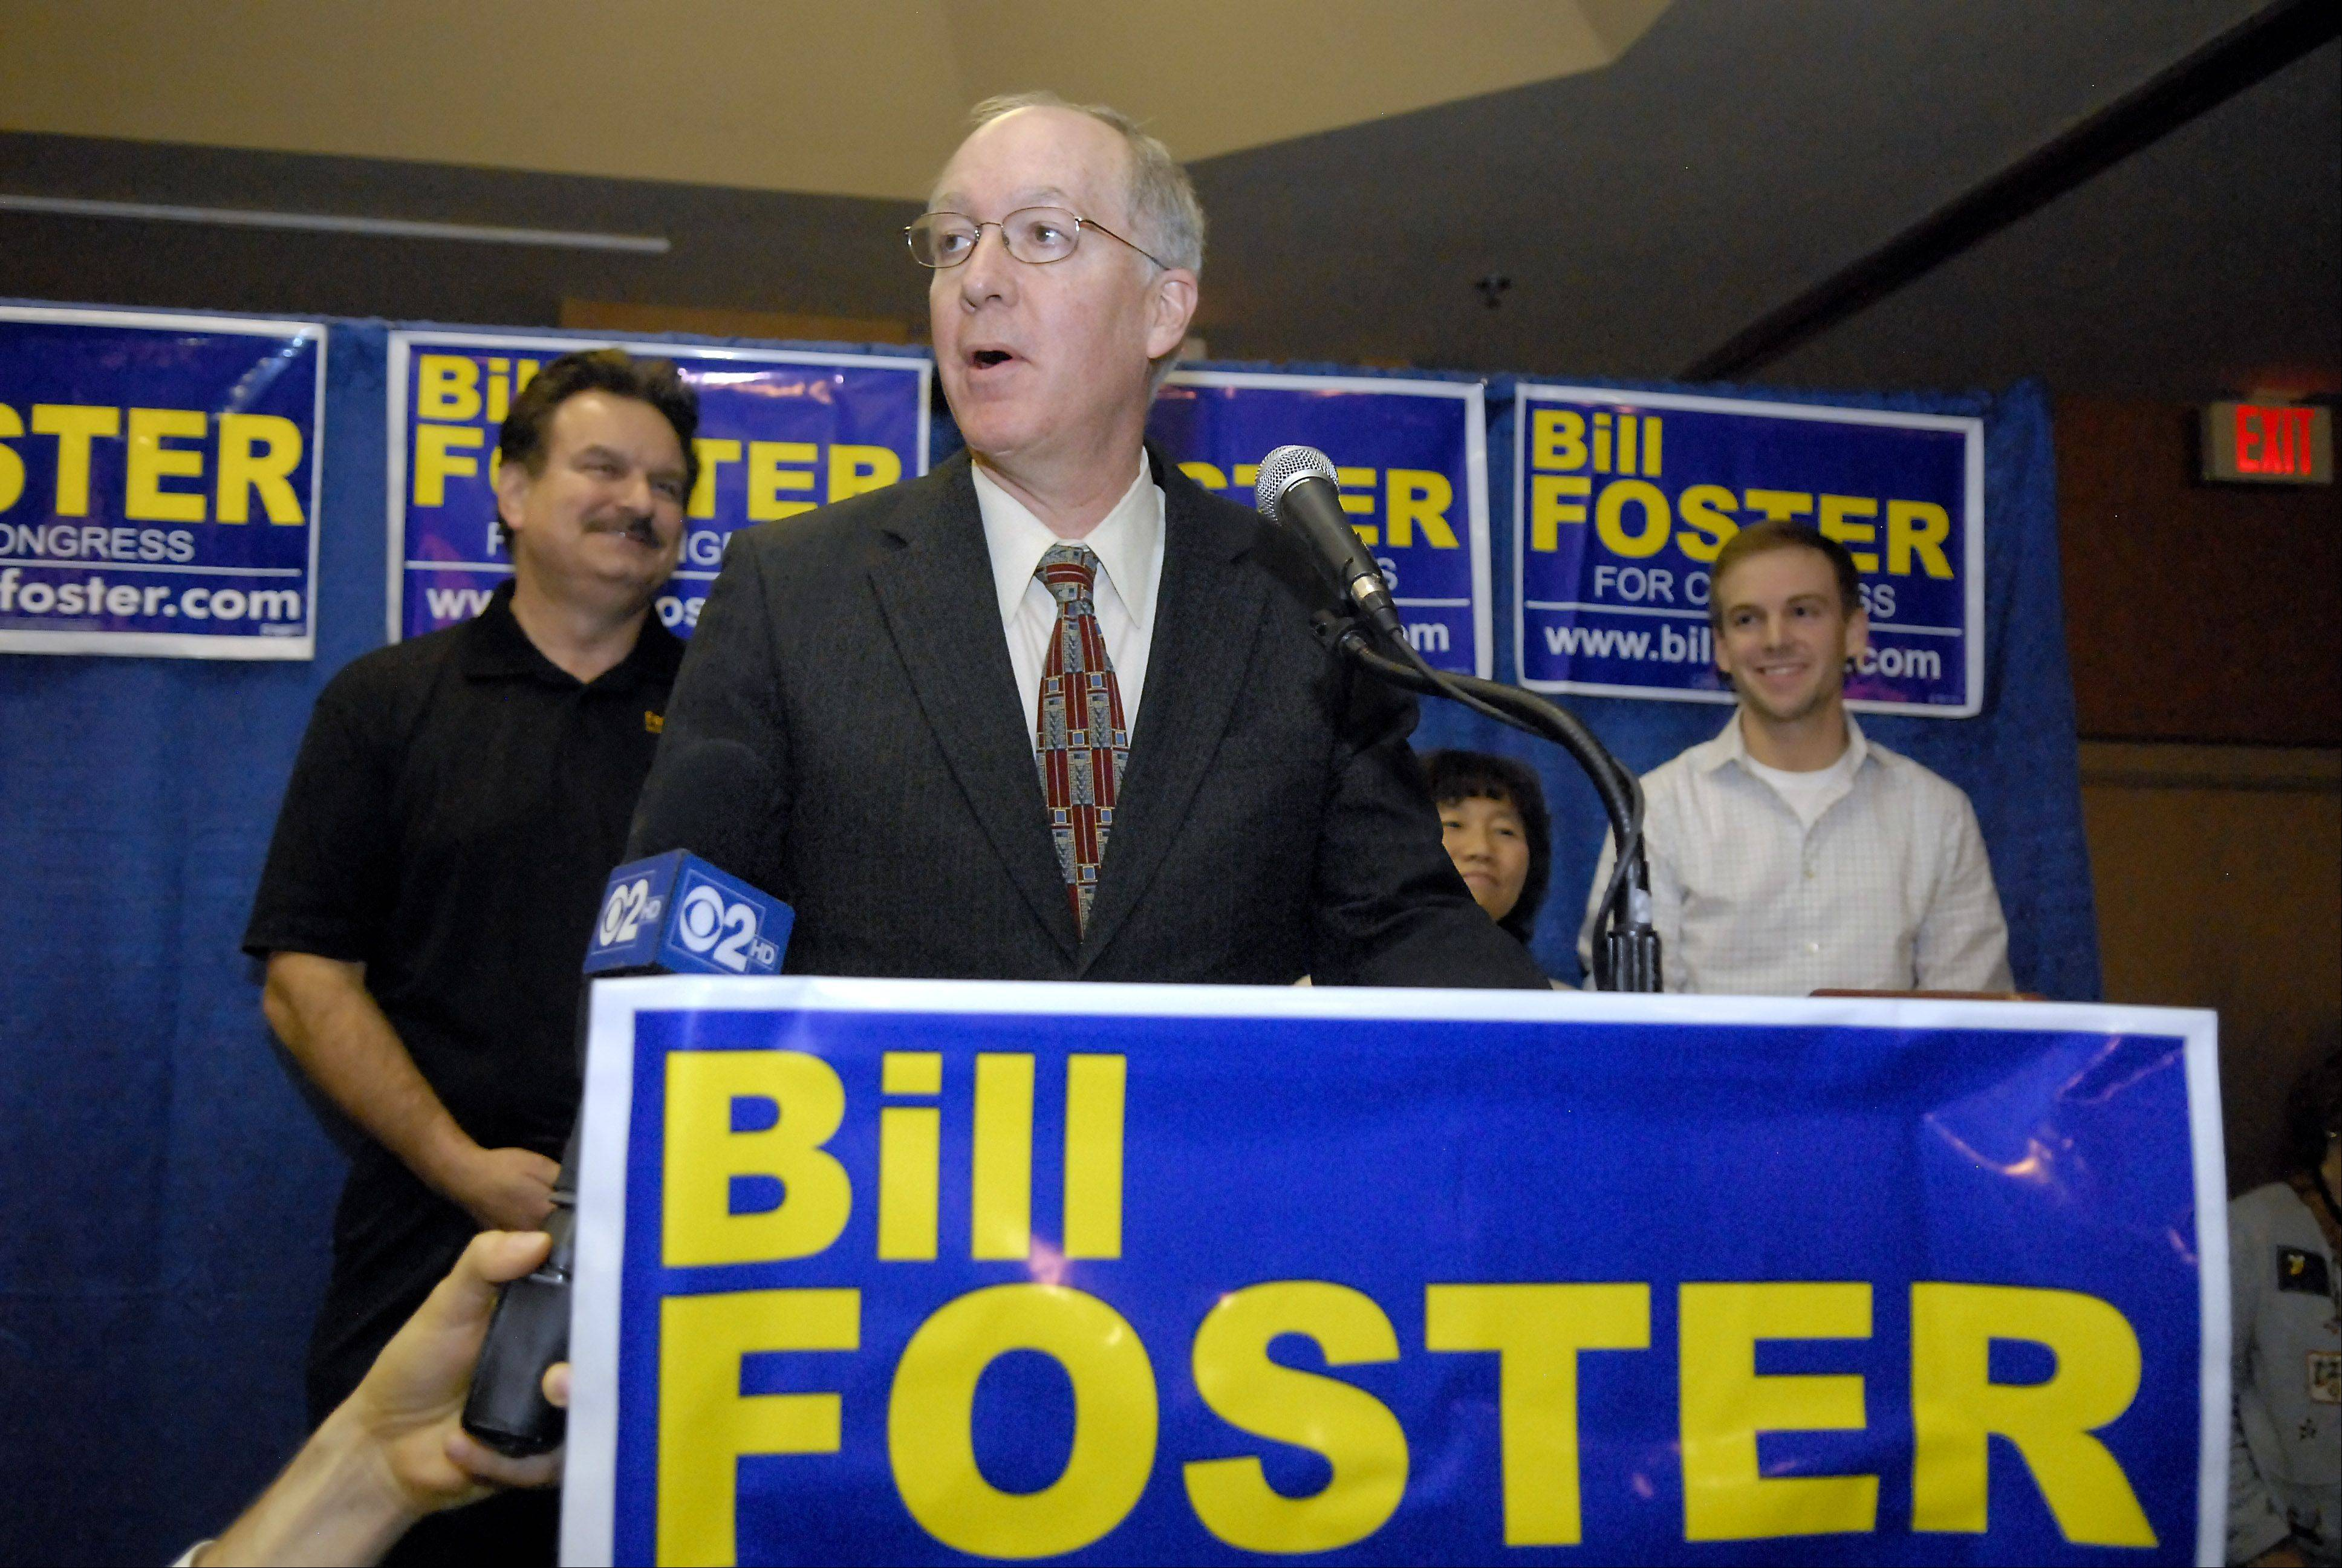 Bill Foster gives his acceptance speech Tuesday night after defeating Judy Biggert to capture the 11th Congressional District seat.